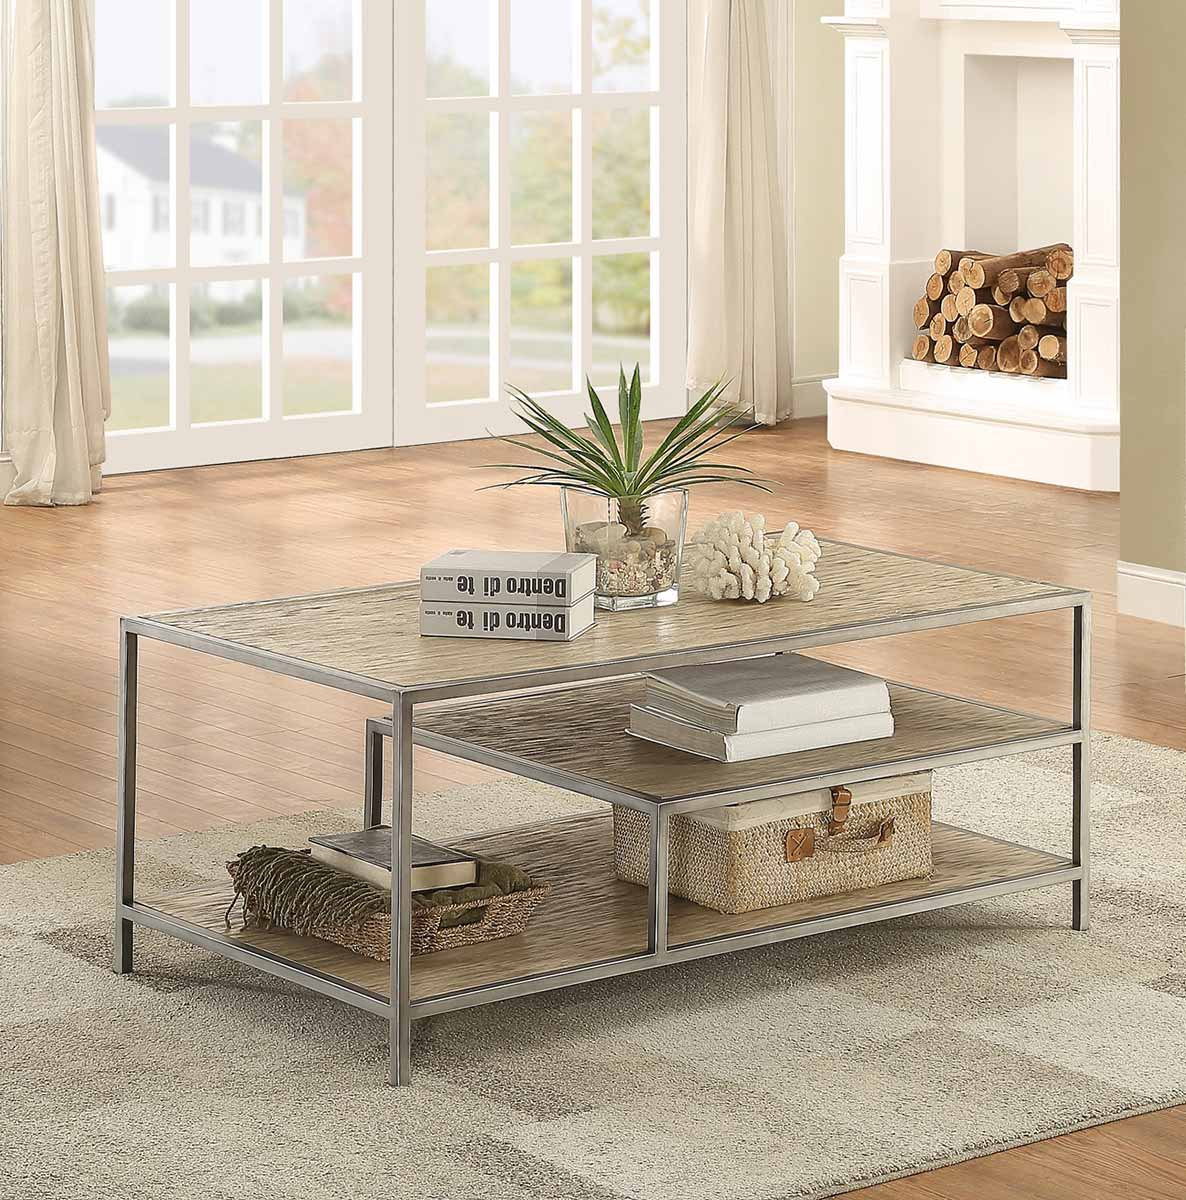 Homelegance Xaria Coffee/Cocktail Table